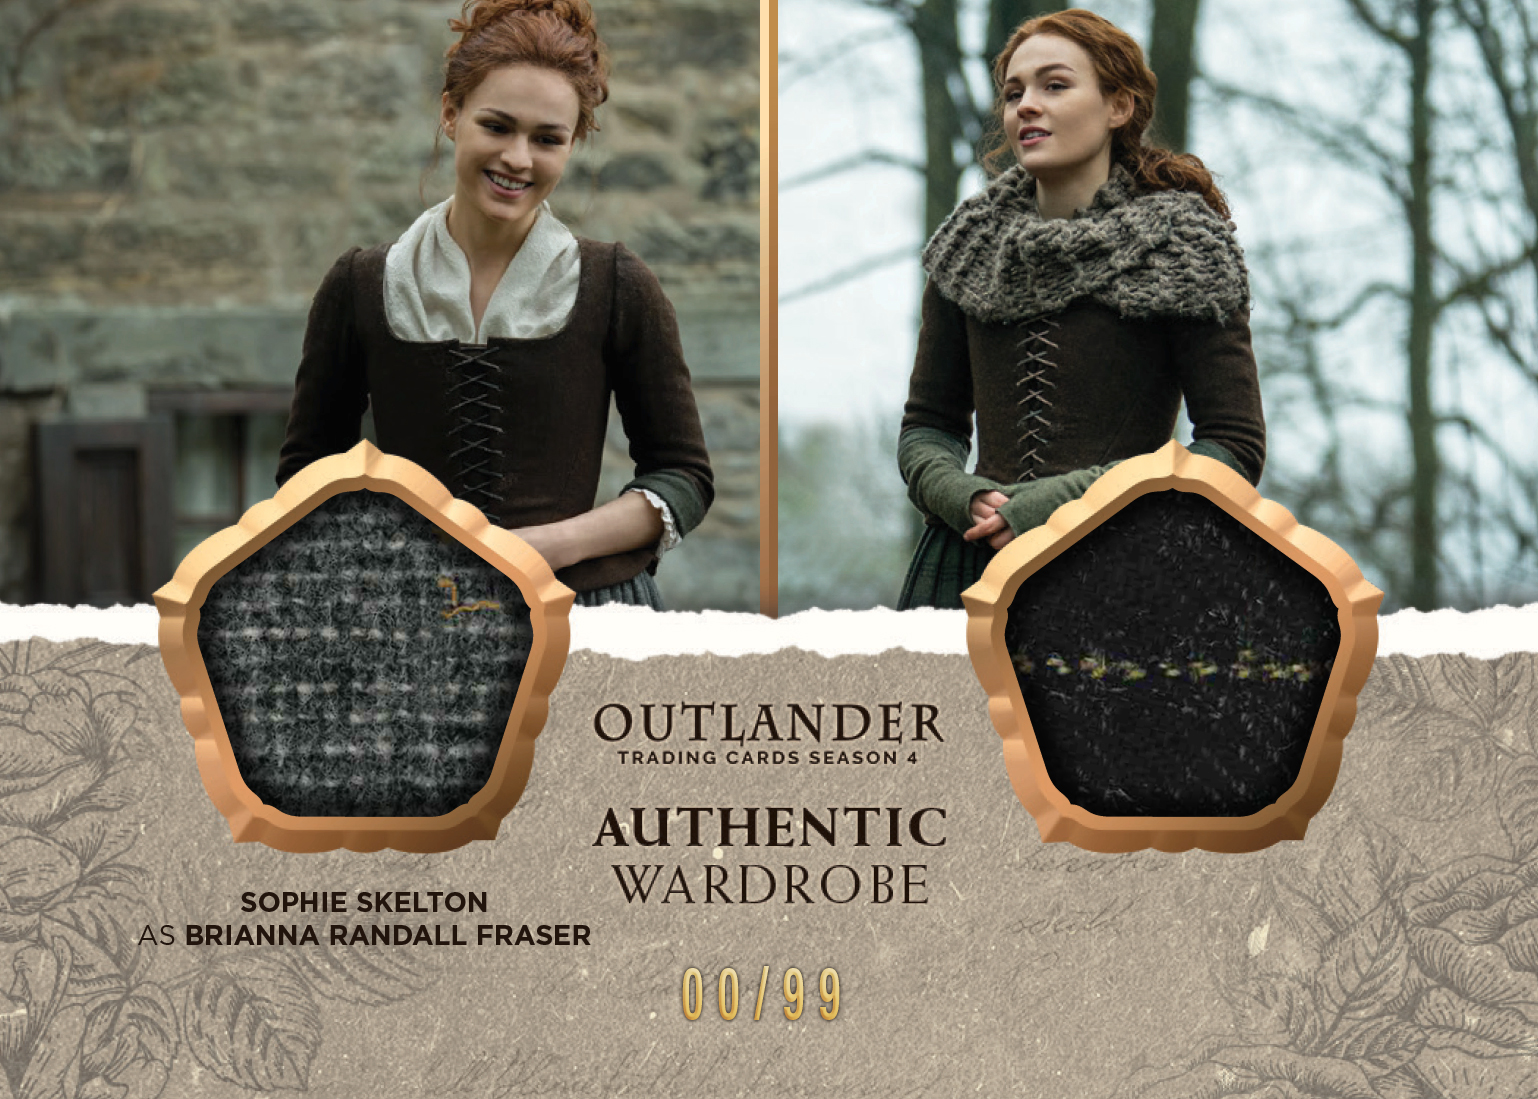 Outlander Trading Cards Season 4: Convention Wardrobe Card CE5 (Cryptozoic Con II Exclusive)